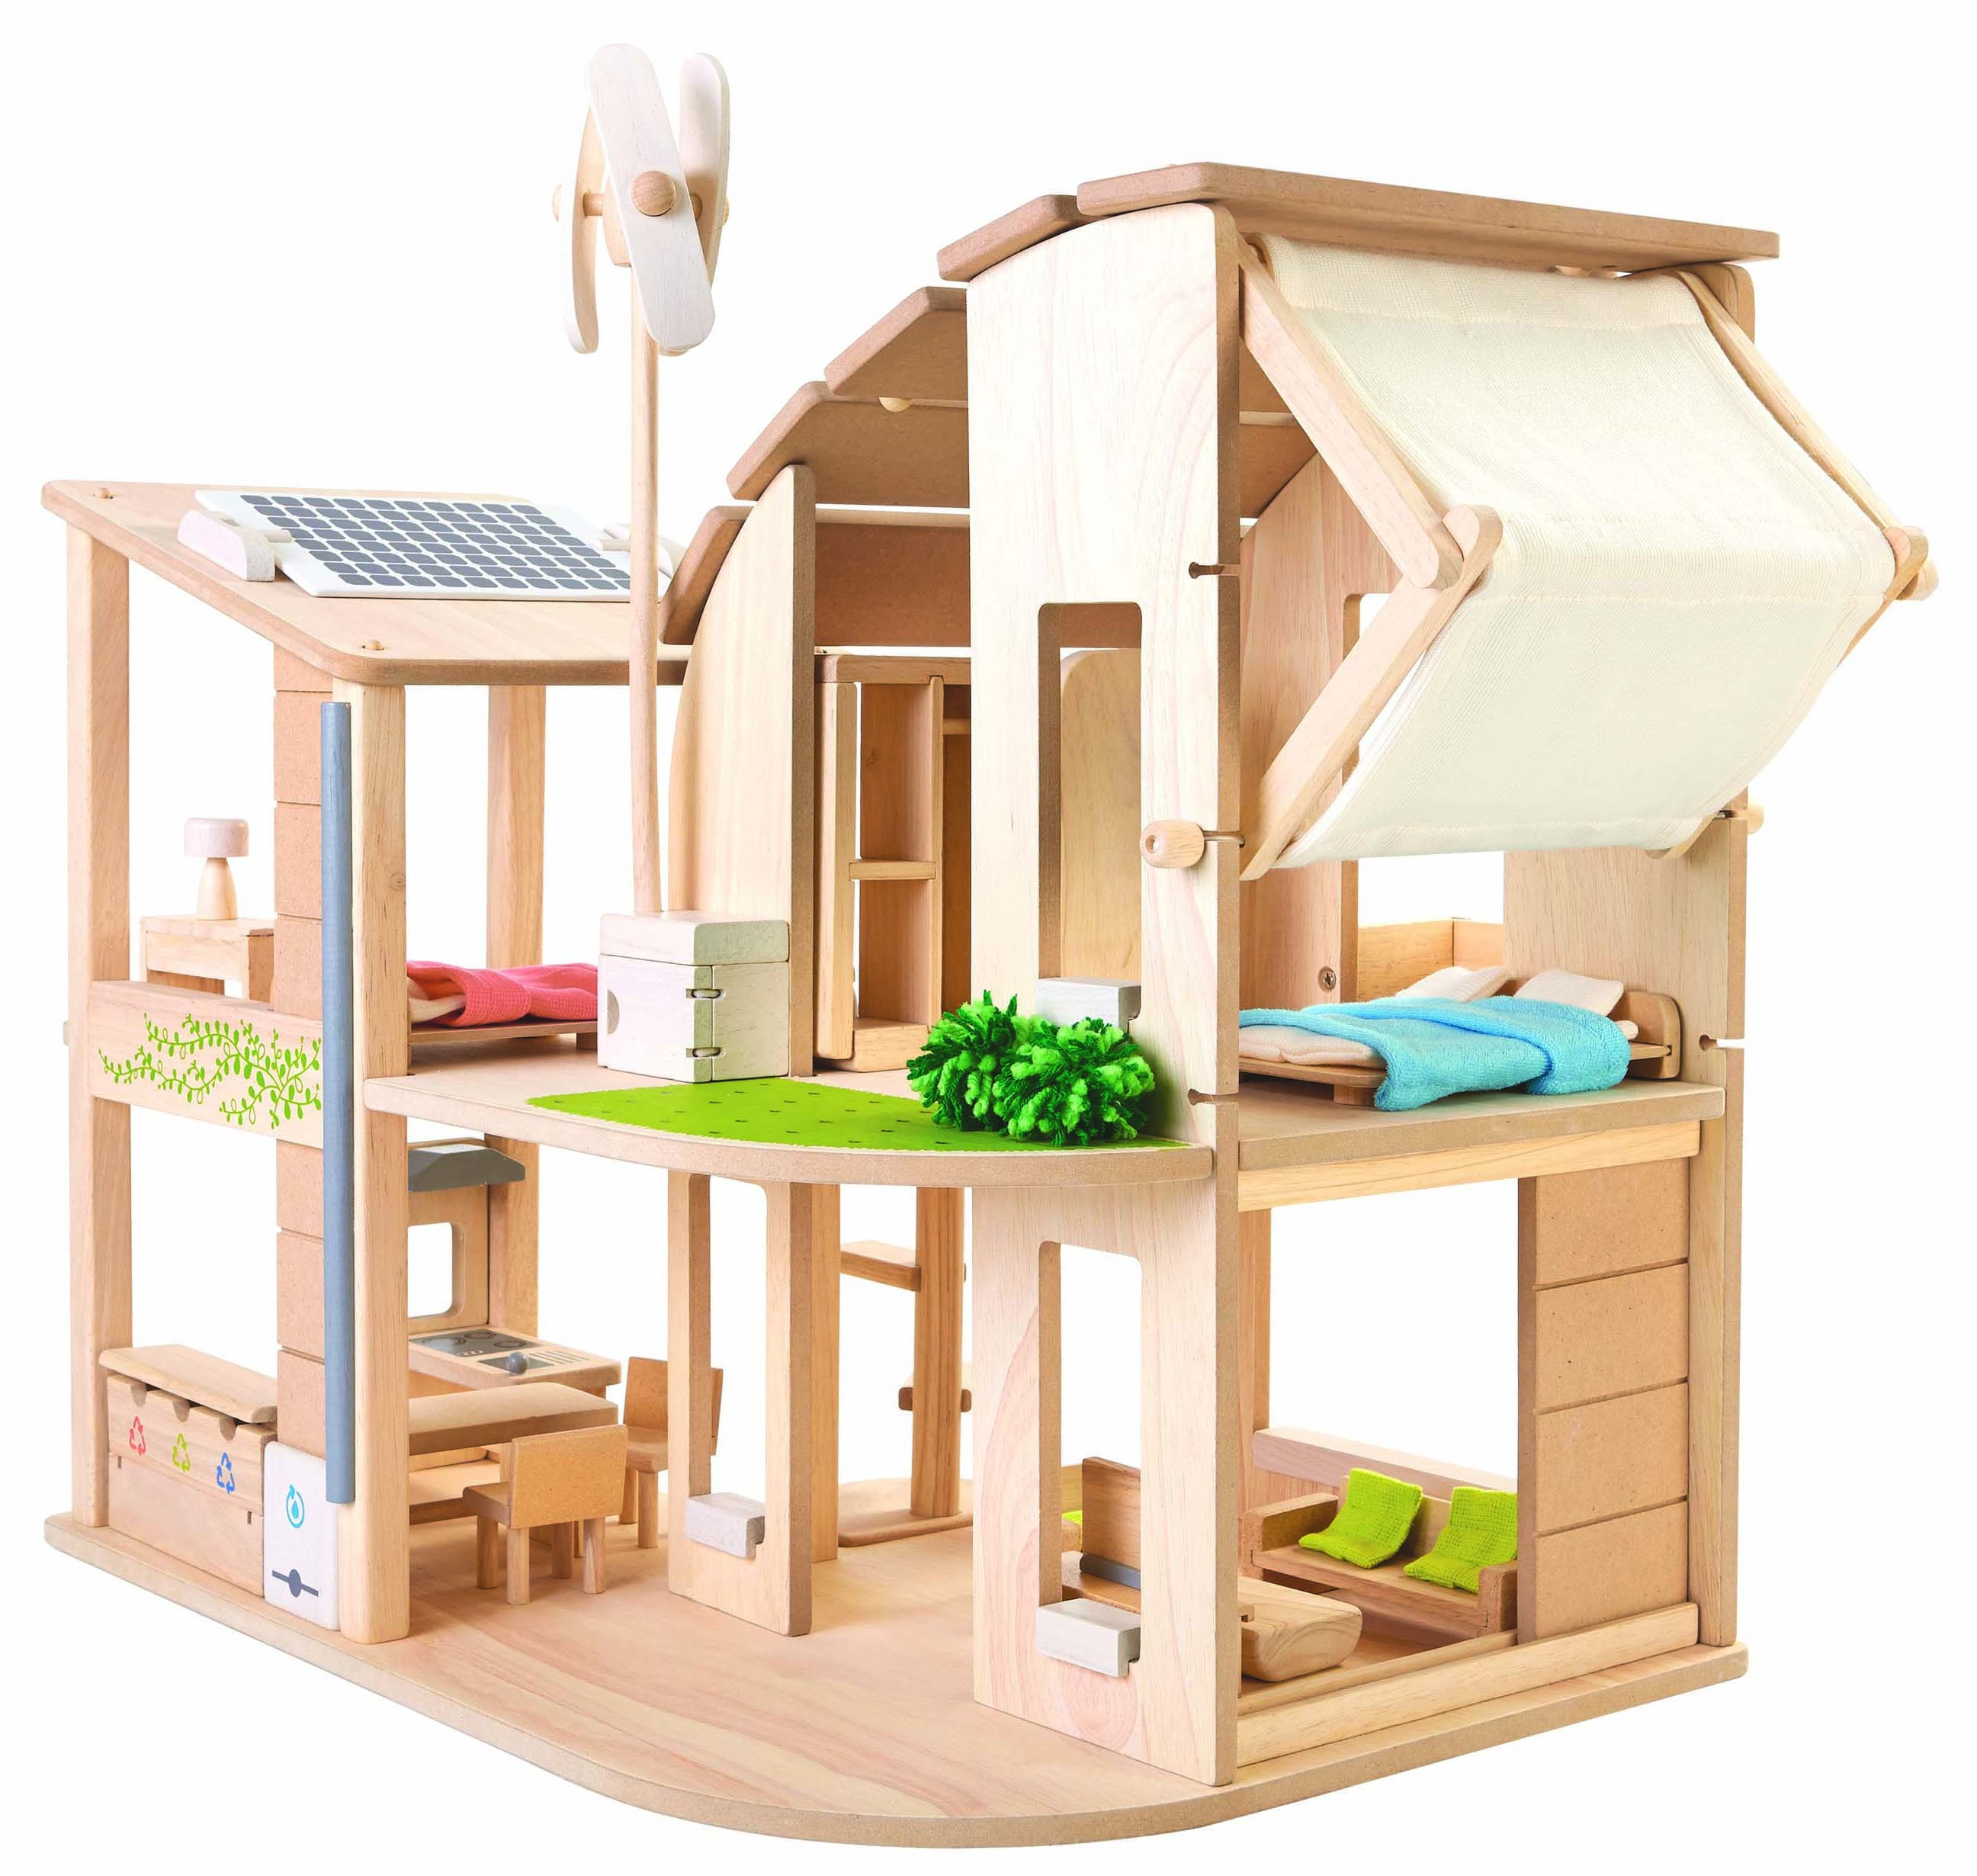 Plan Toys Green Dolls 39 House Furniture